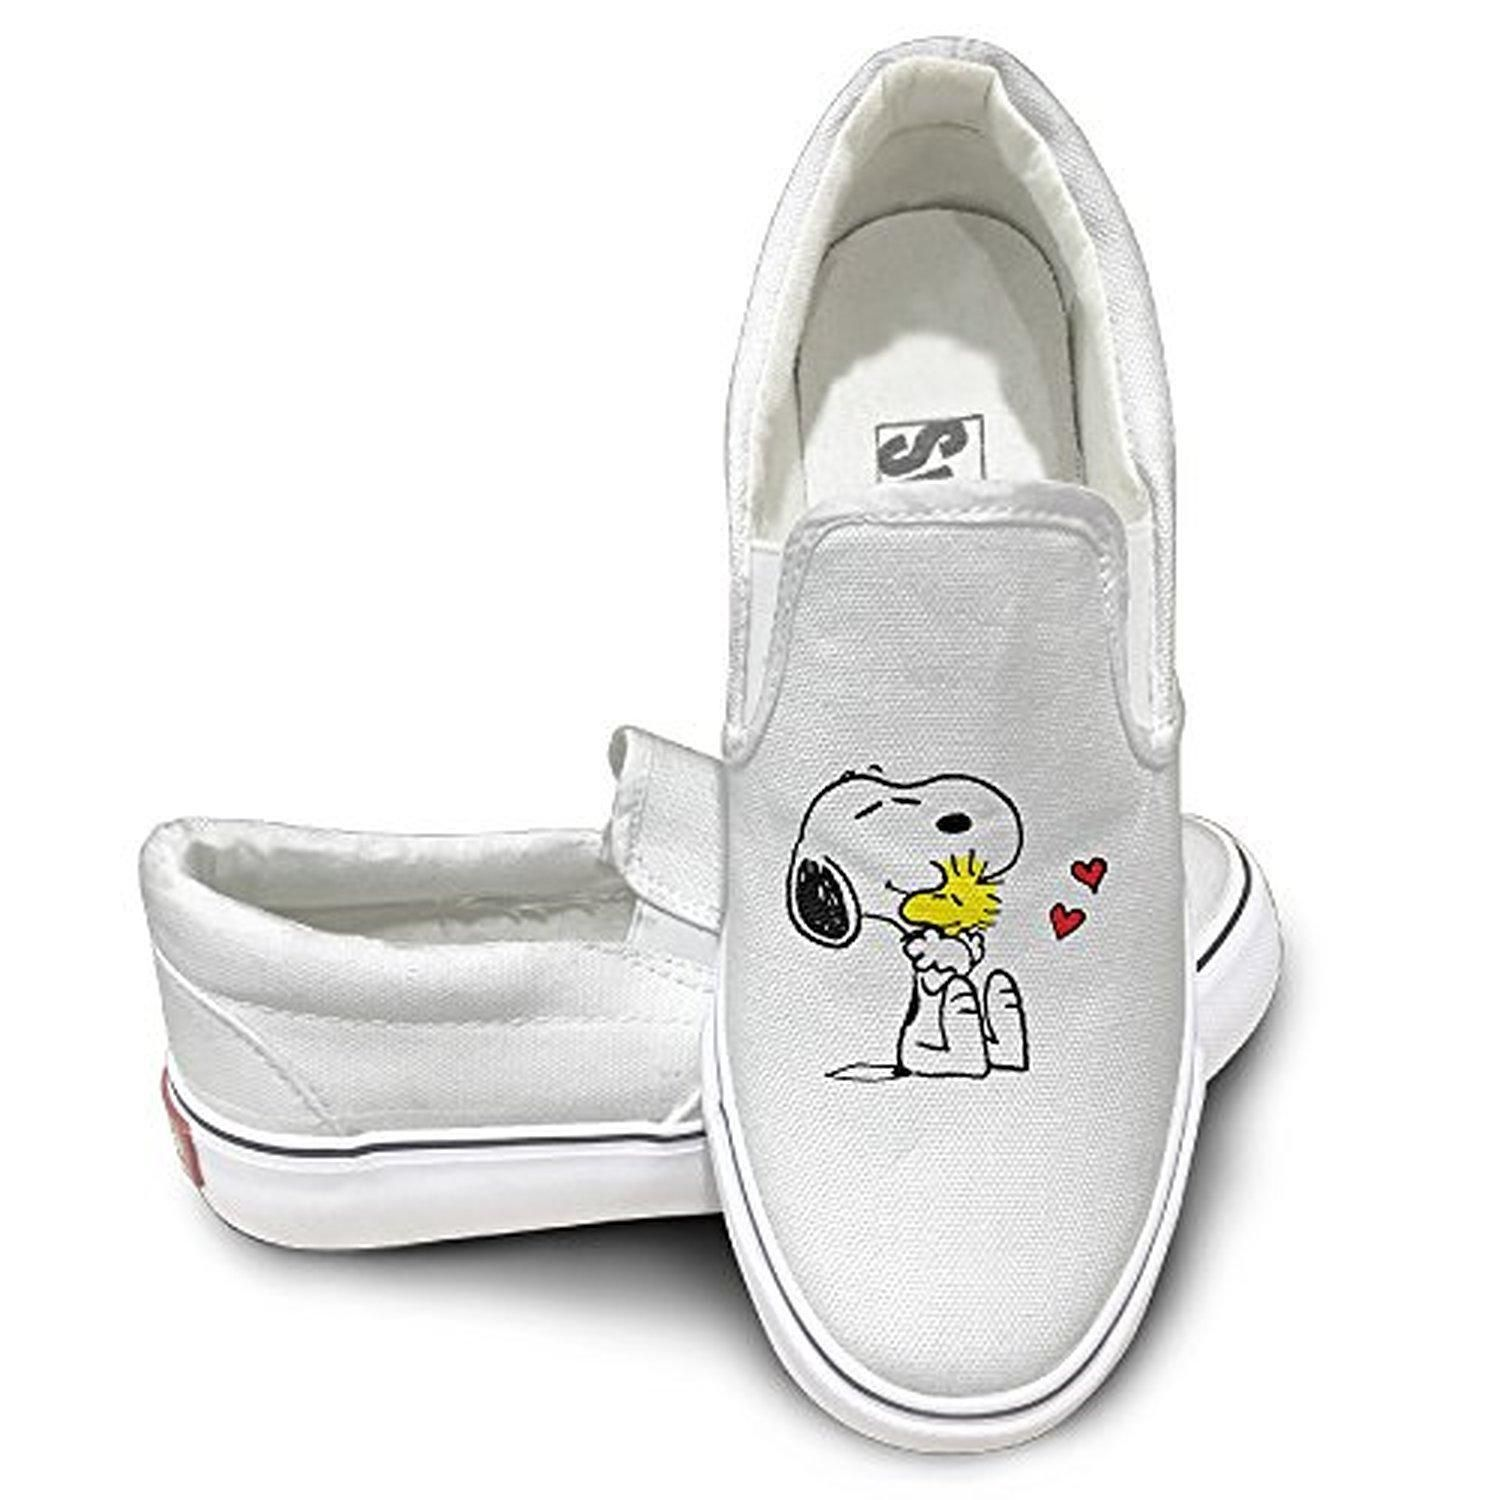 Cute Unicorn You Me Men Casual Sport Shoes Lightweight Slip-On Loafers Shoes